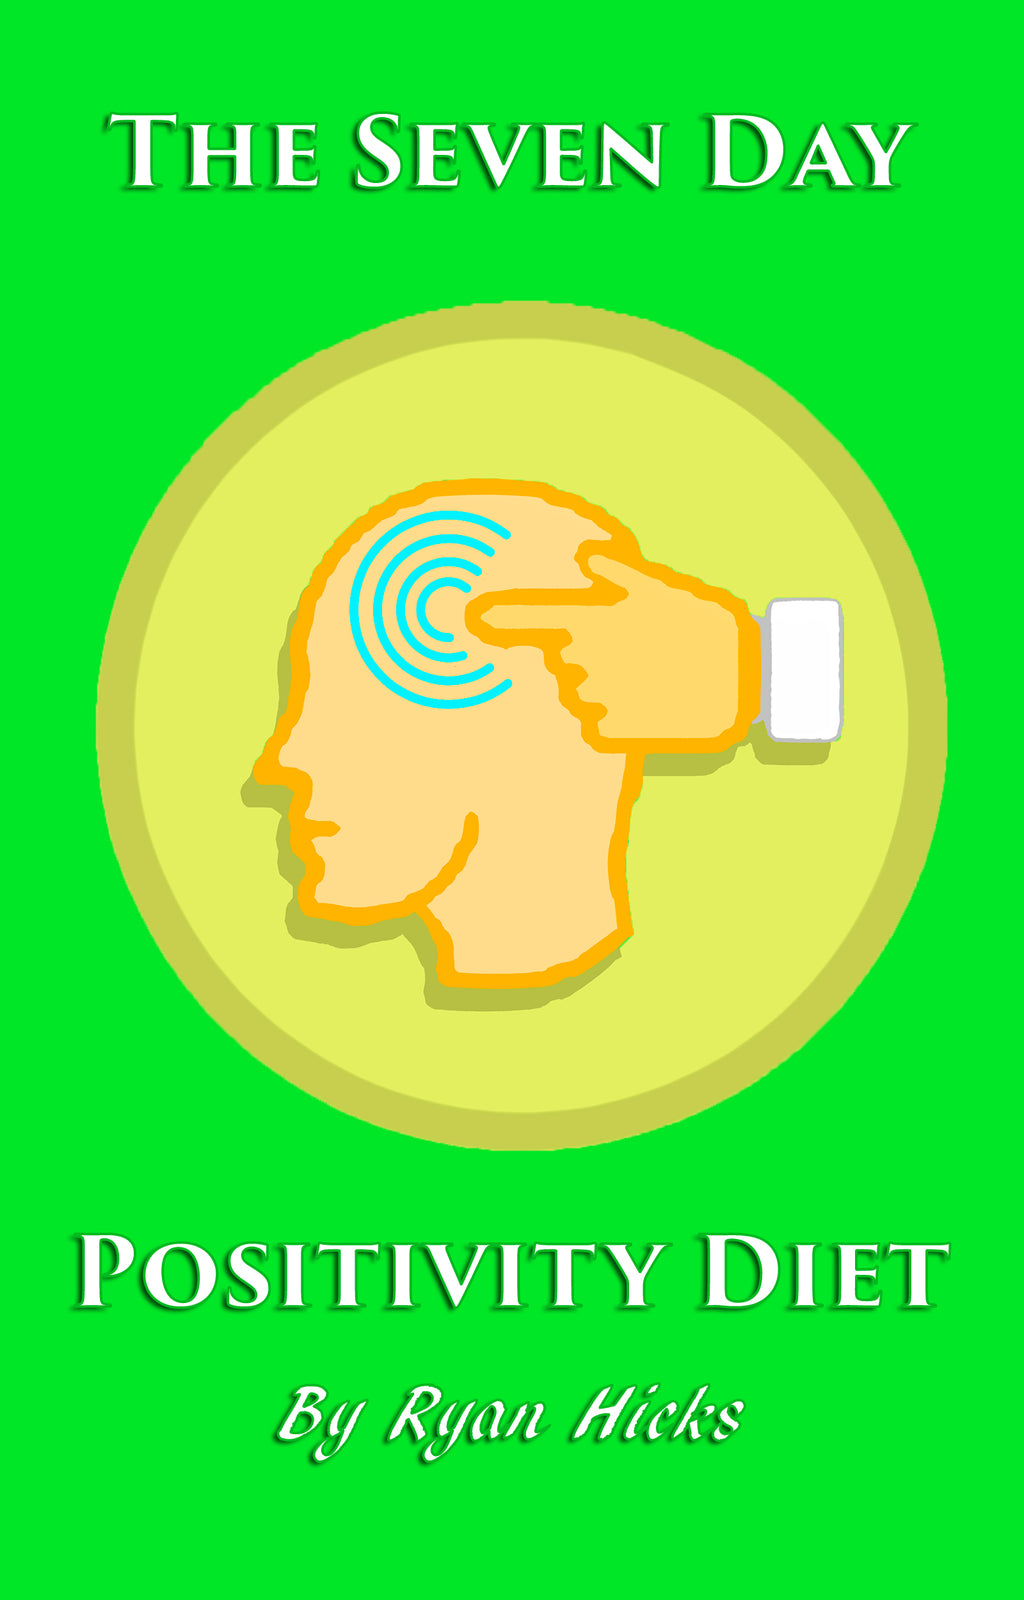 The Seven Day Positivity Diet By Ryan Hicks